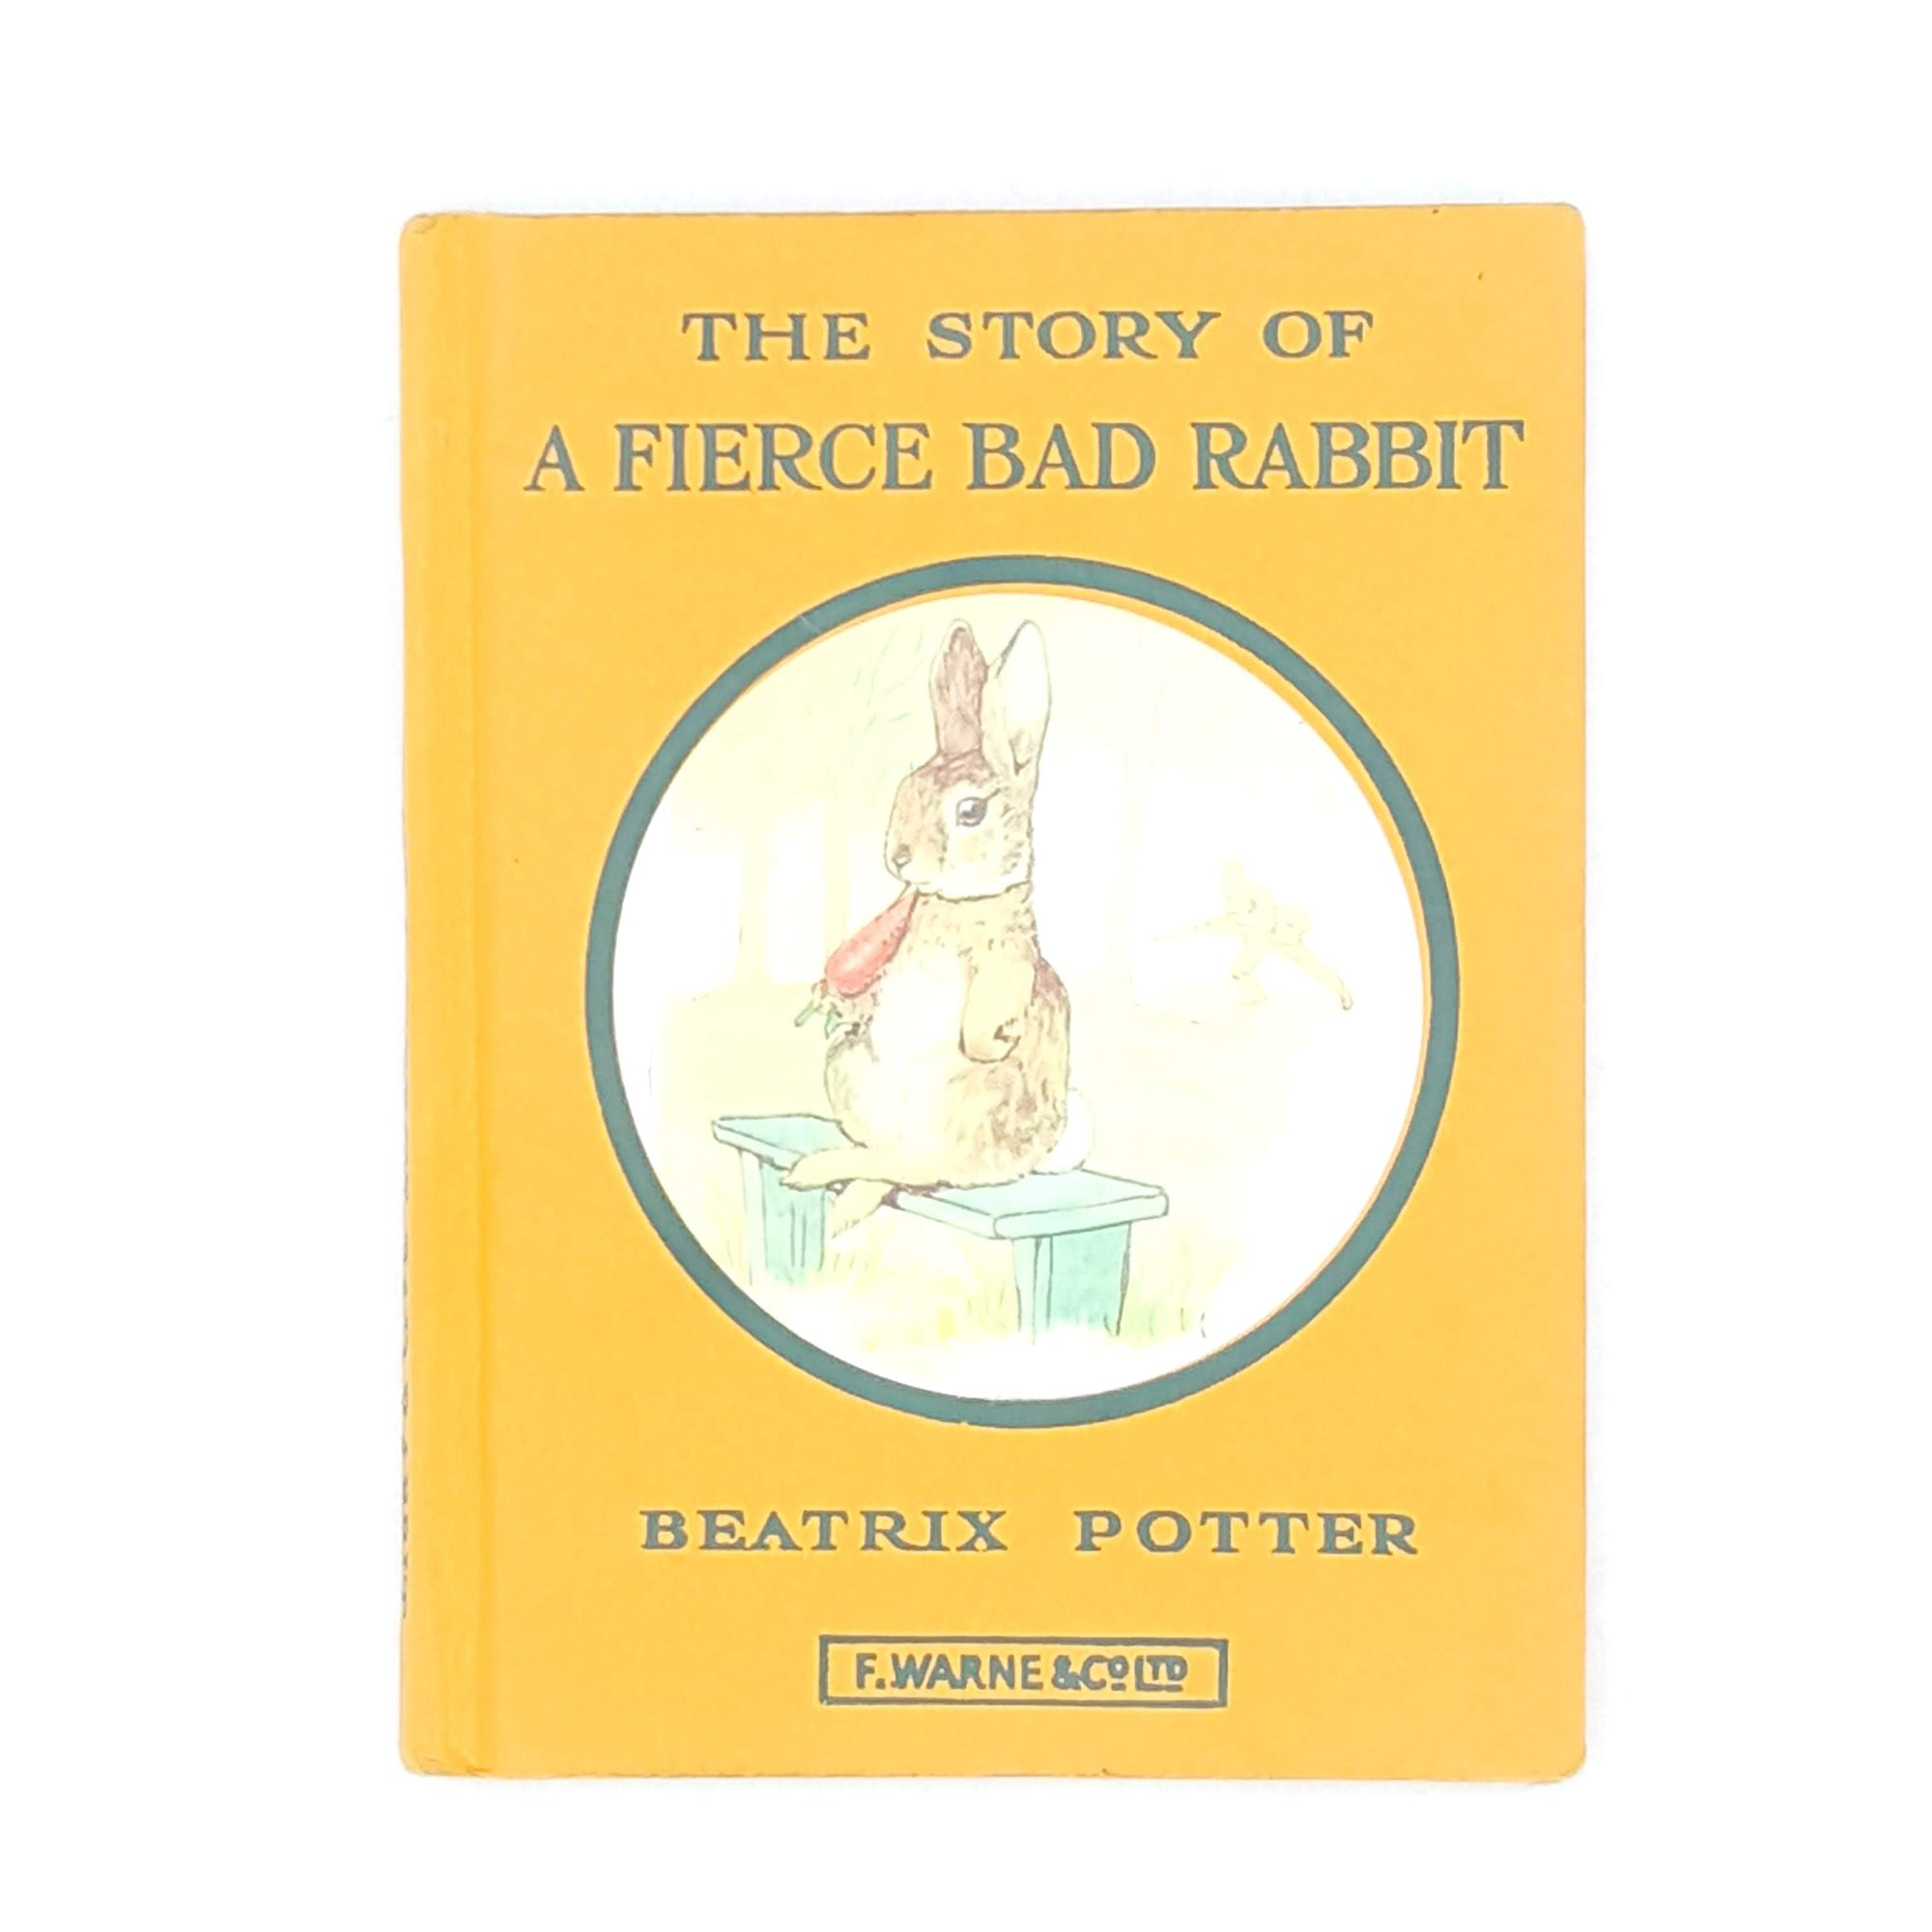 classic-patterned-fierce-bad-rabbitbooks-decorative-thrift-orange-old-country-house-library-antique-childrens-beatrix-potter-vintage-